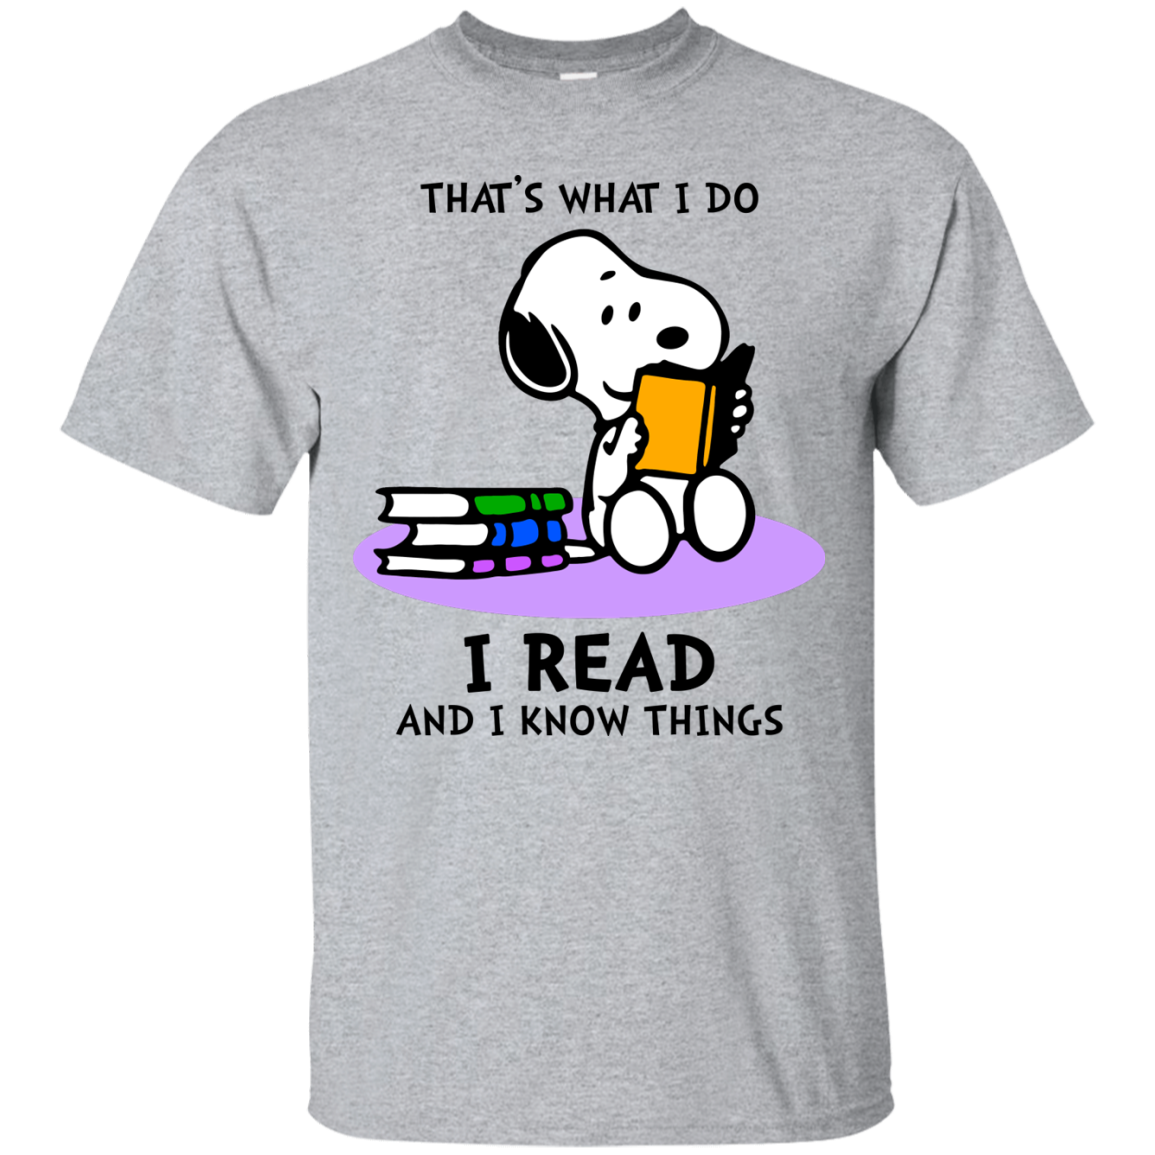 Snoopy : That's what i do, I read and i know things t shirt, tank, hoodie